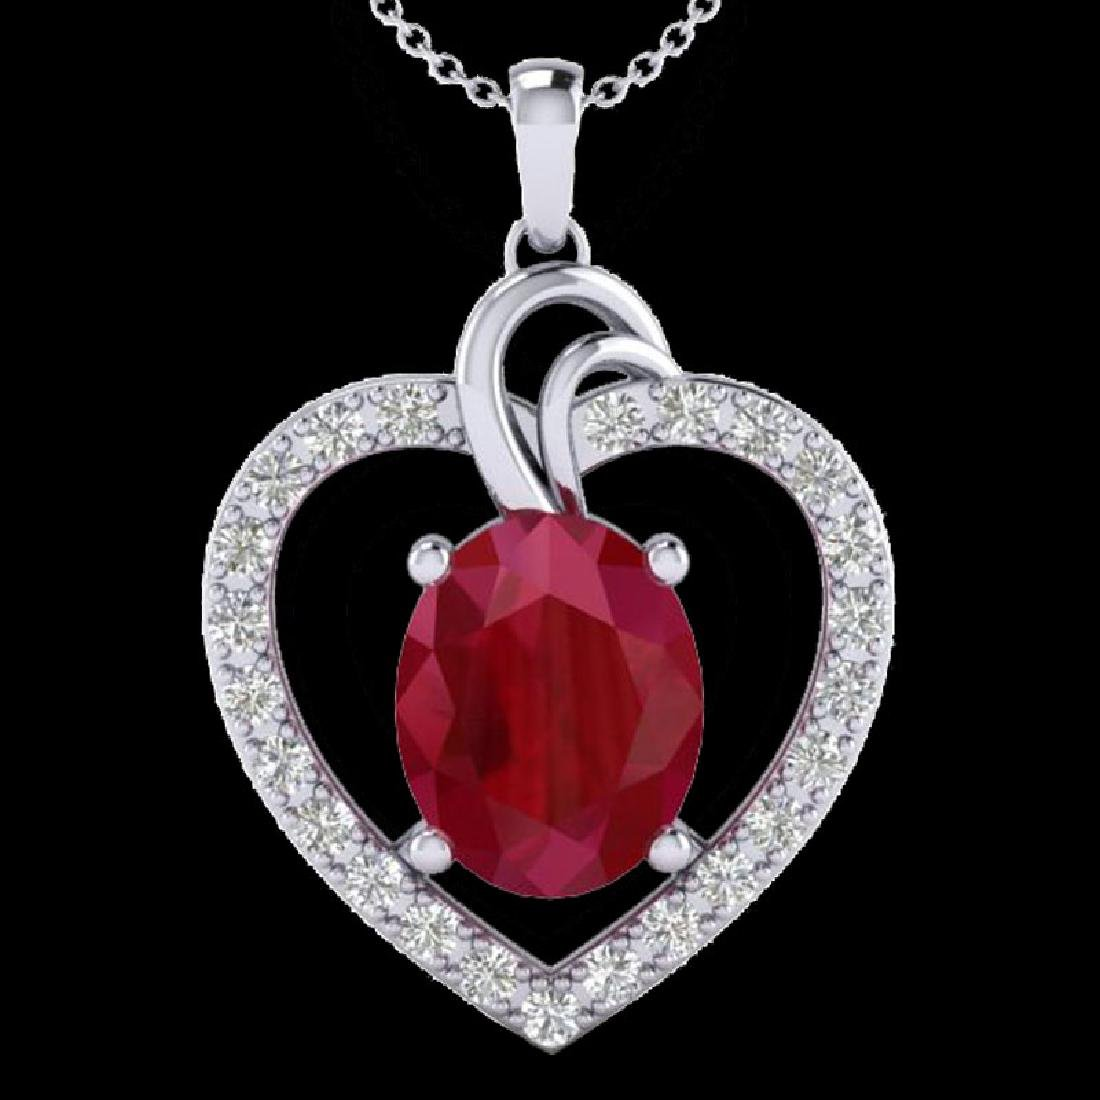 4 CTW Ruby & VS/SI Diamond Designer Heart Necklace 14K